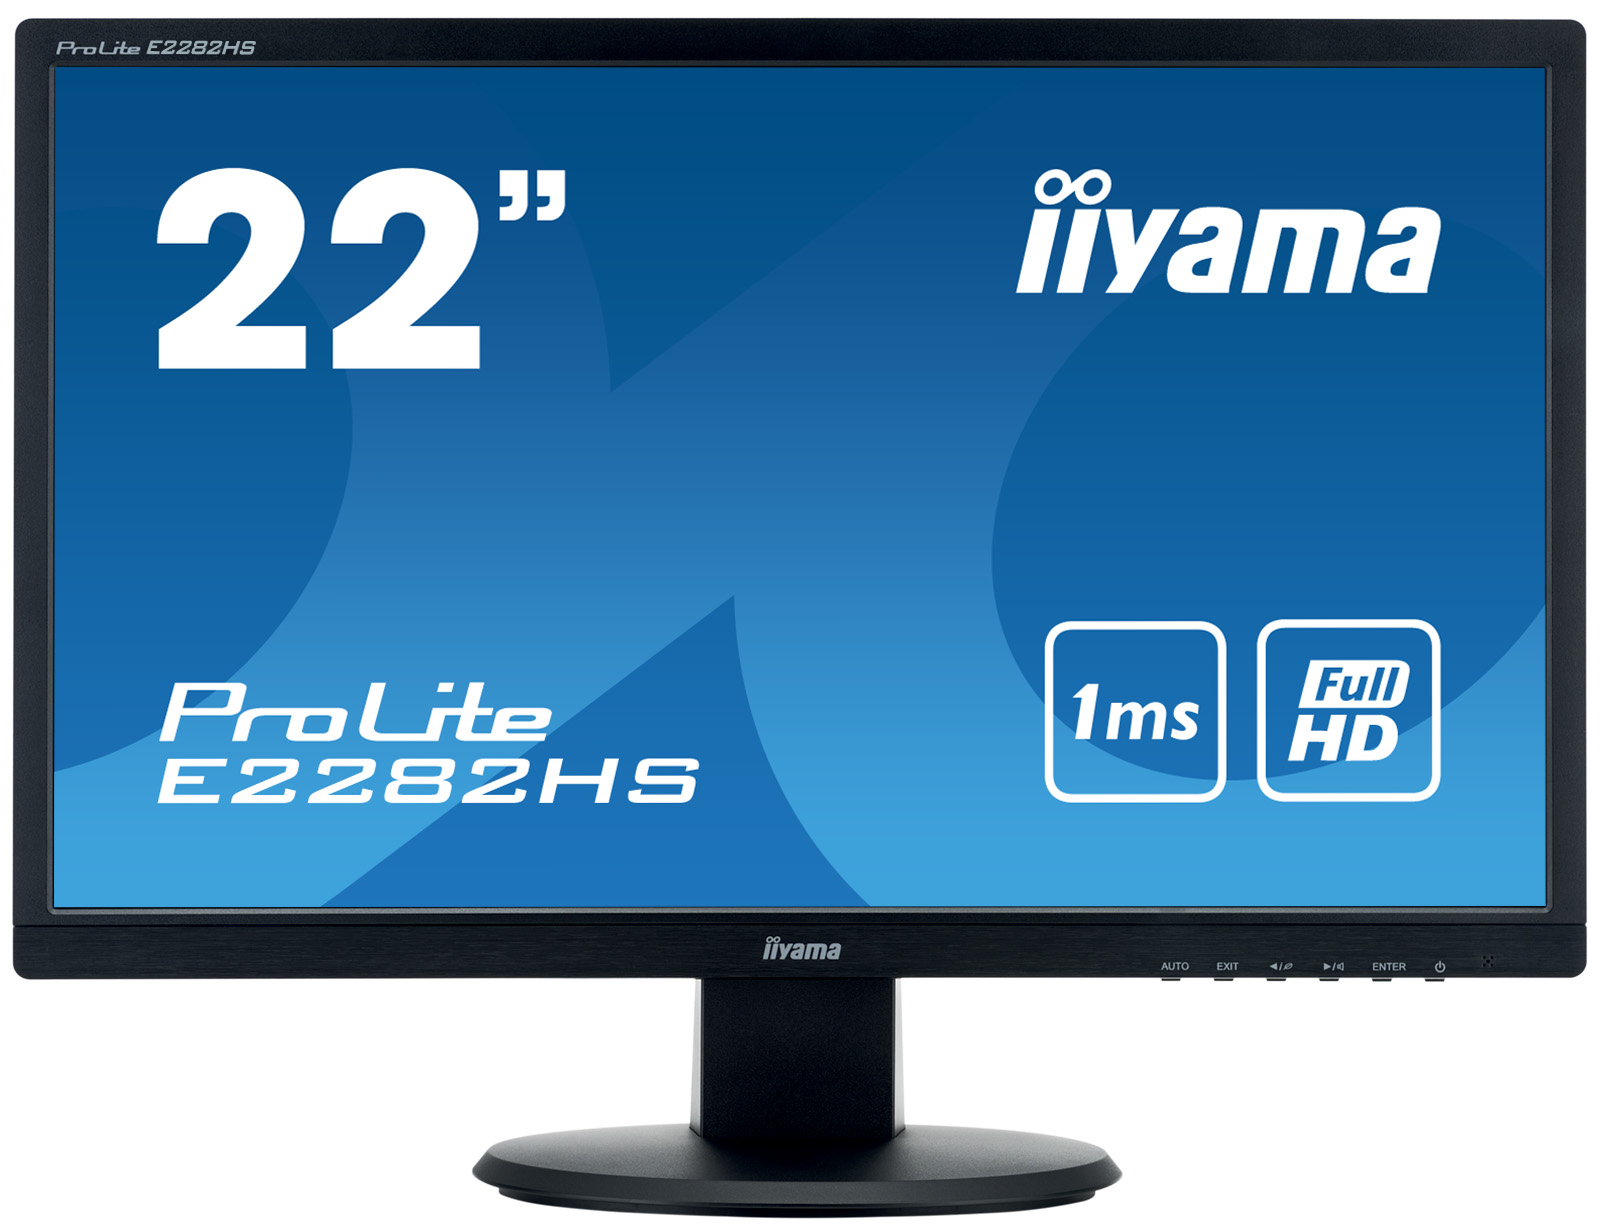 21.5in Monitor HD Speakers VGA DVID HDMI